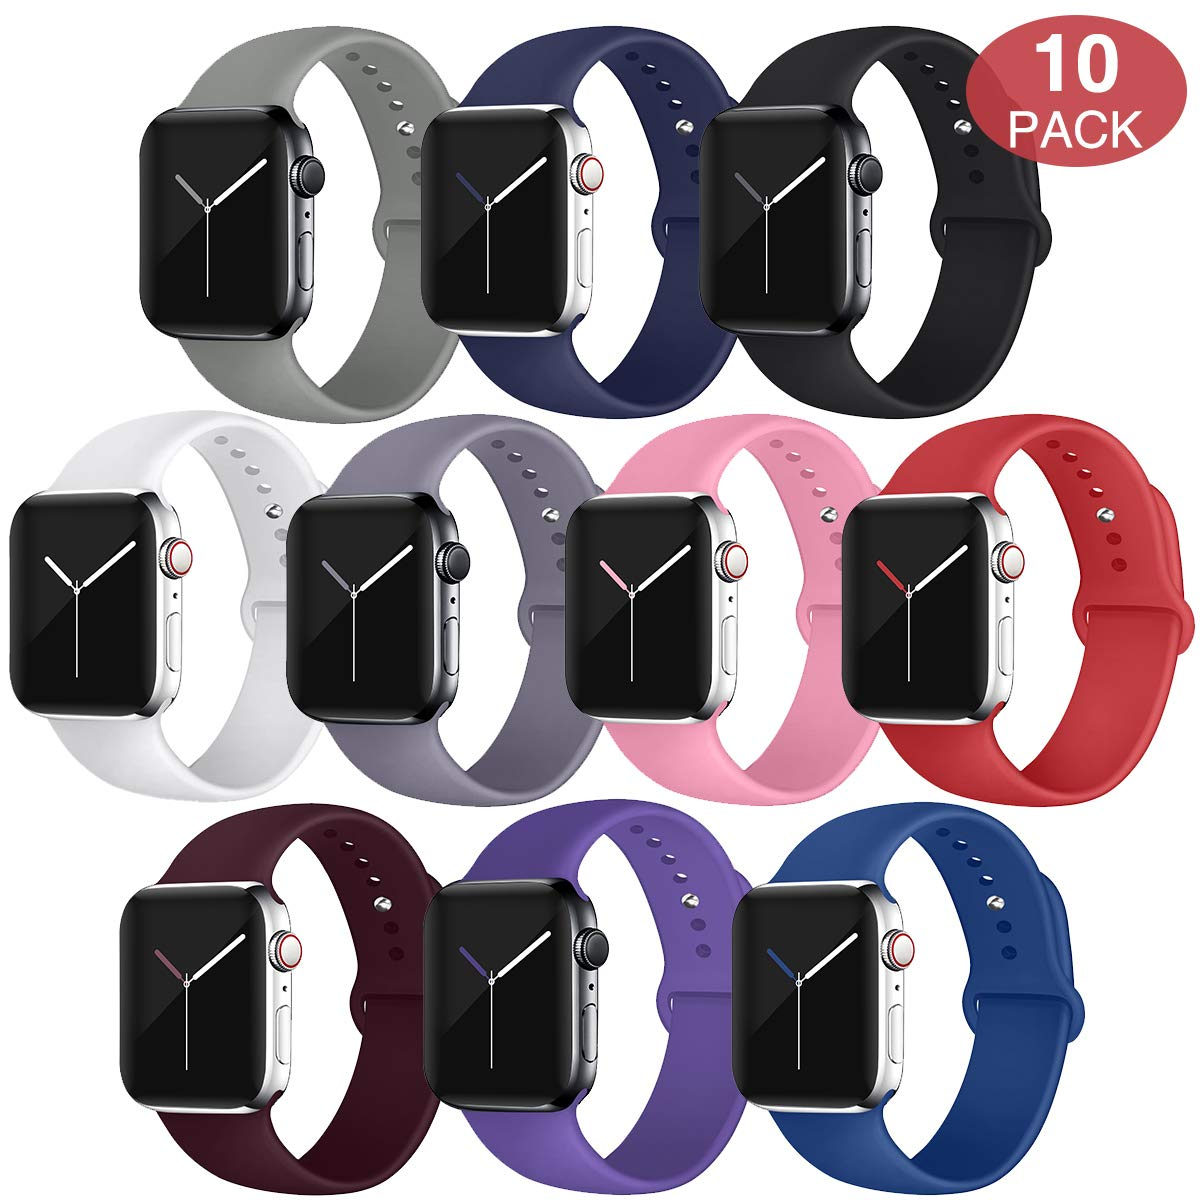 EXCHAR Sport Band Compatible with Apple Watch Band 40mm 38mm, Soft Silicone Strap, Replacement Wristband for iWatch Band Series 4, Series 3, 2, 1, Durable Colorful Design for Women, Men-10 Pack S/M by EXCHAR